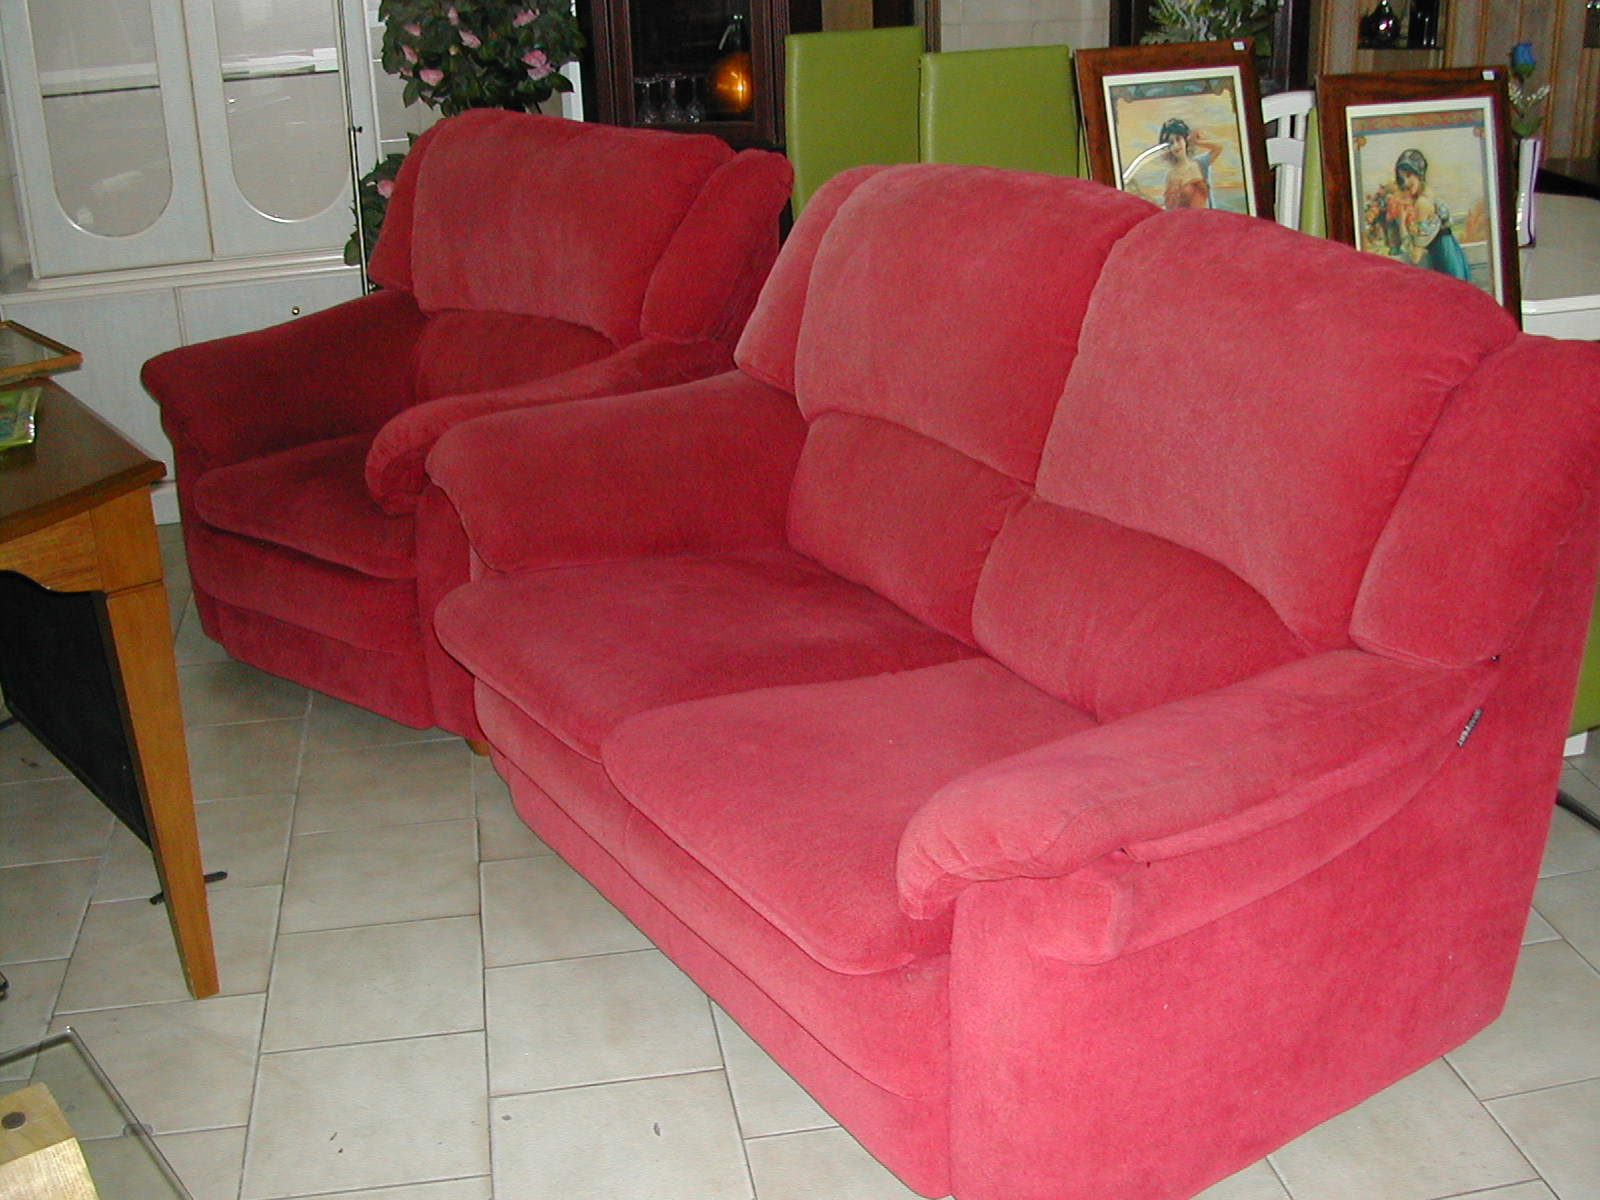 Remarkable Very Comfy Rose Pink 2 Seater Sofa With Matching Chair Gmtry Best Dining Table And Chair Ideas Images Gmtryco